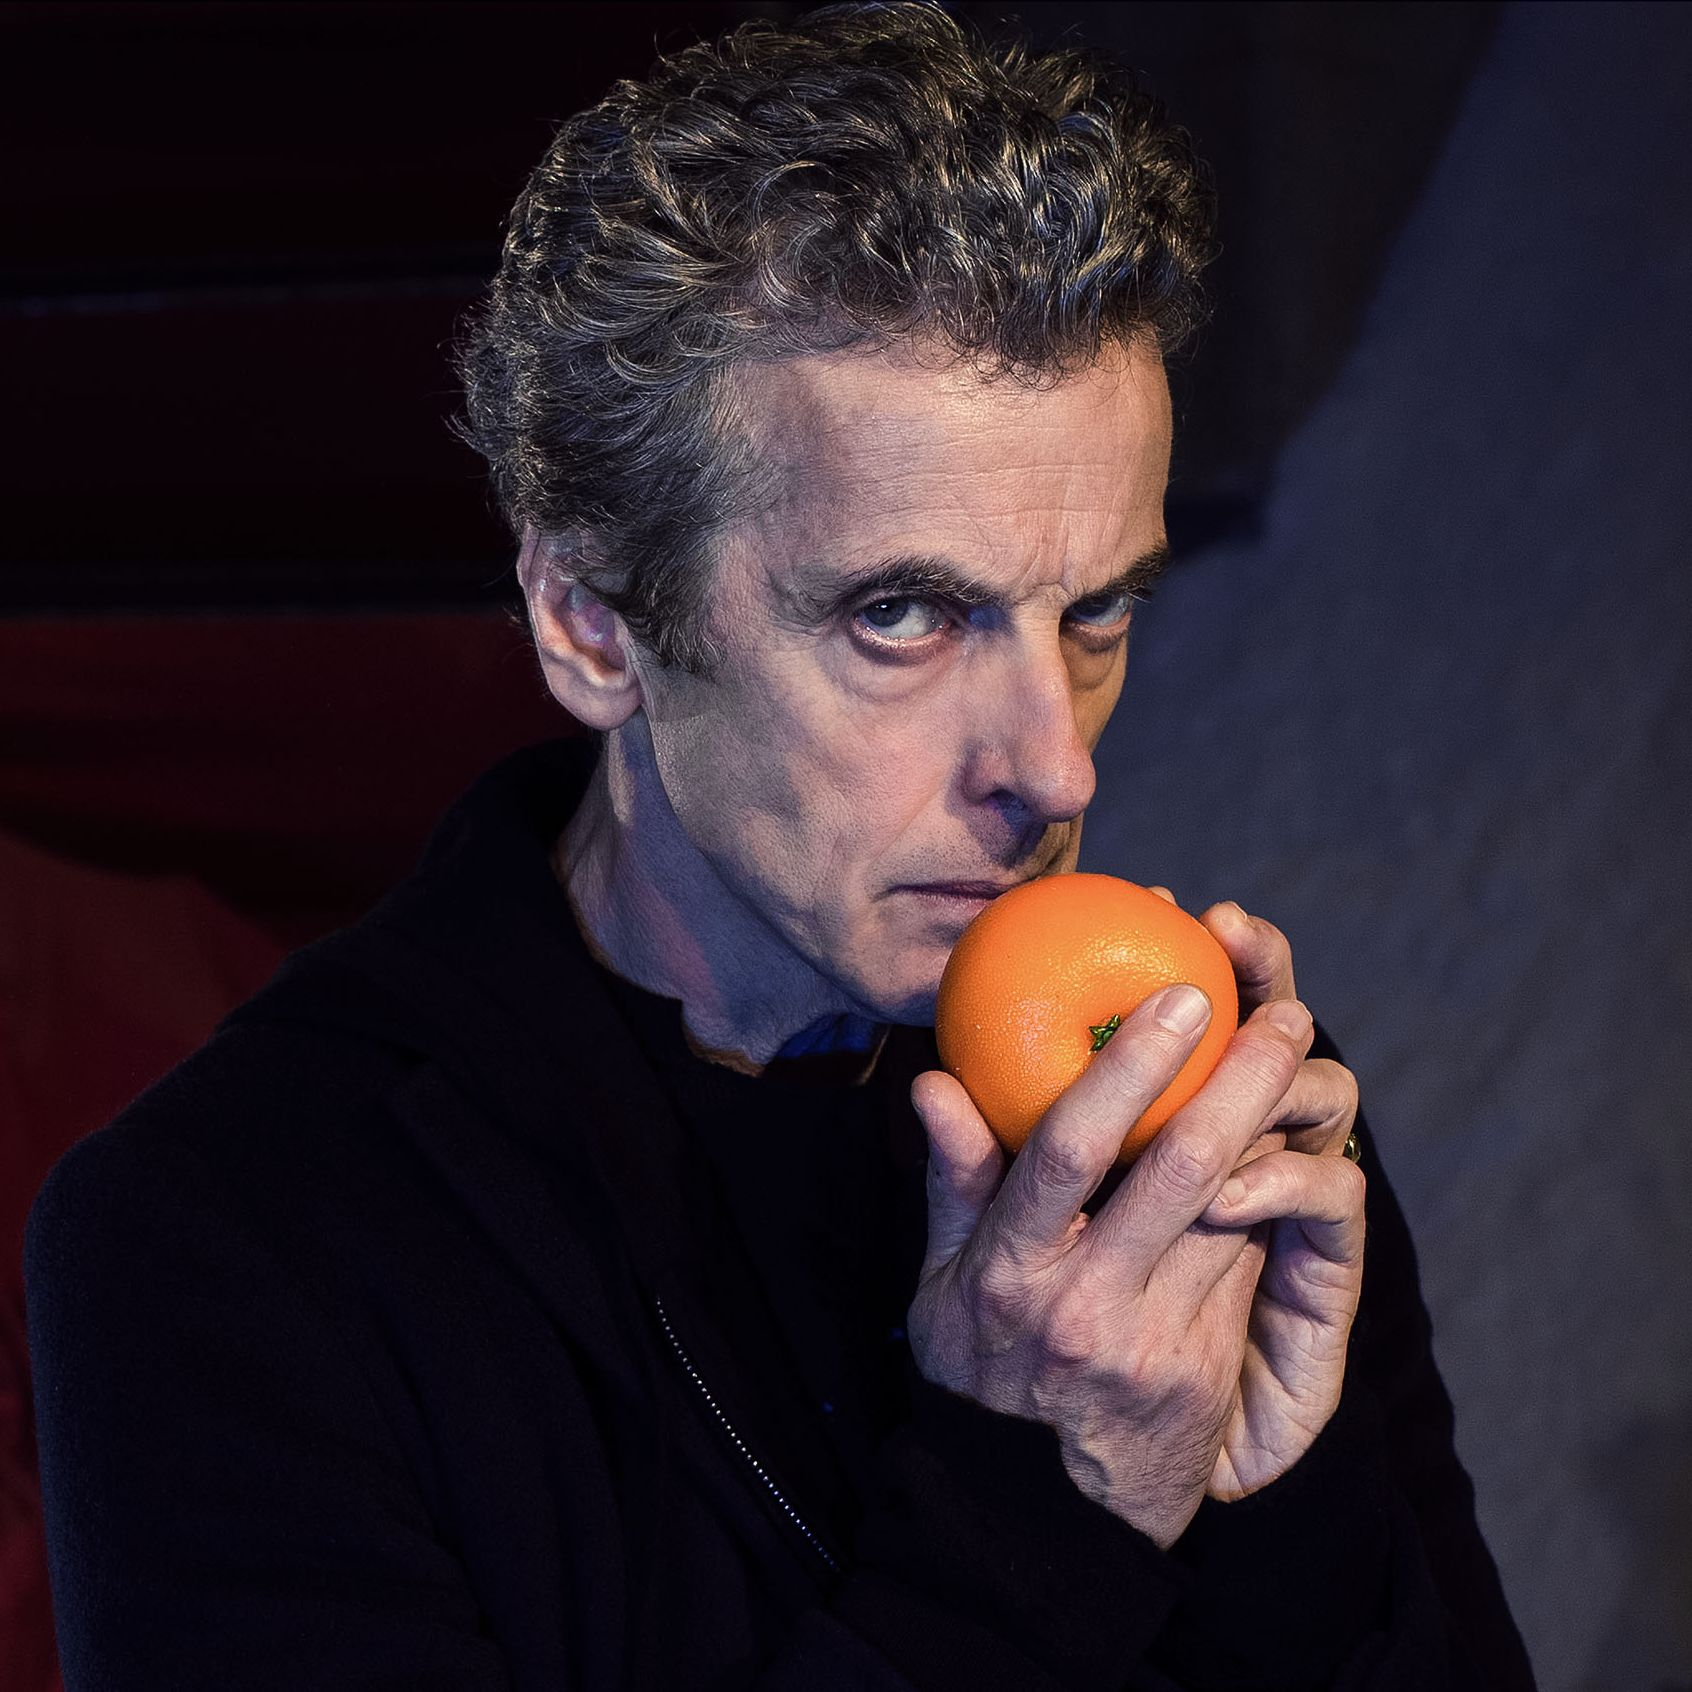 Peter Capaldi as the Doctor (Credit: BBC/David Venni)